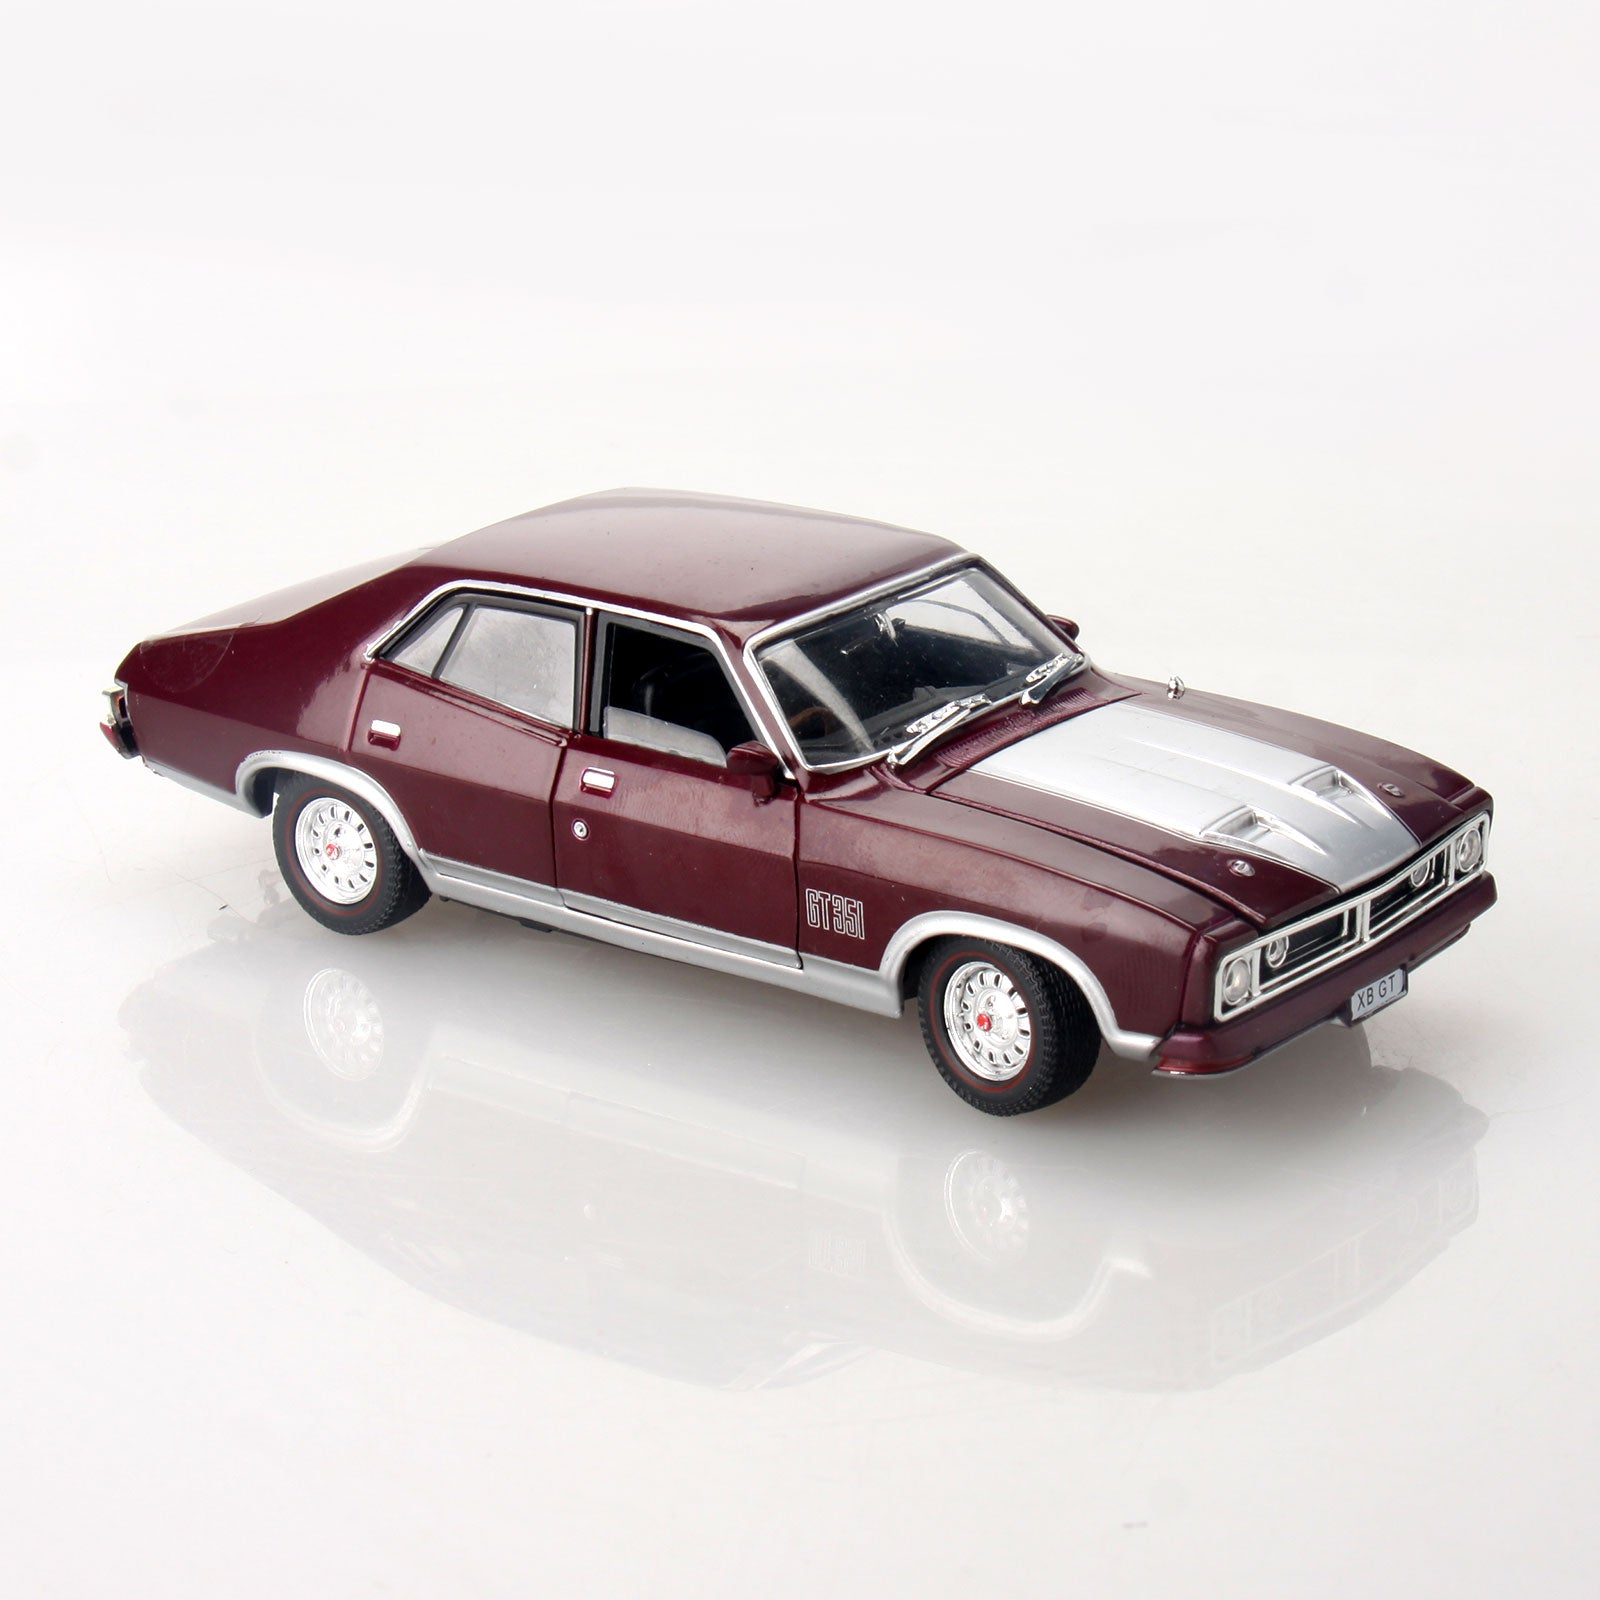 Ford Falcon Xb Gt >> Details About Ford Falcon Xb 351 Gt Sedan 1 32 Scale Aussie Classic Diecast Mulberry Model Car